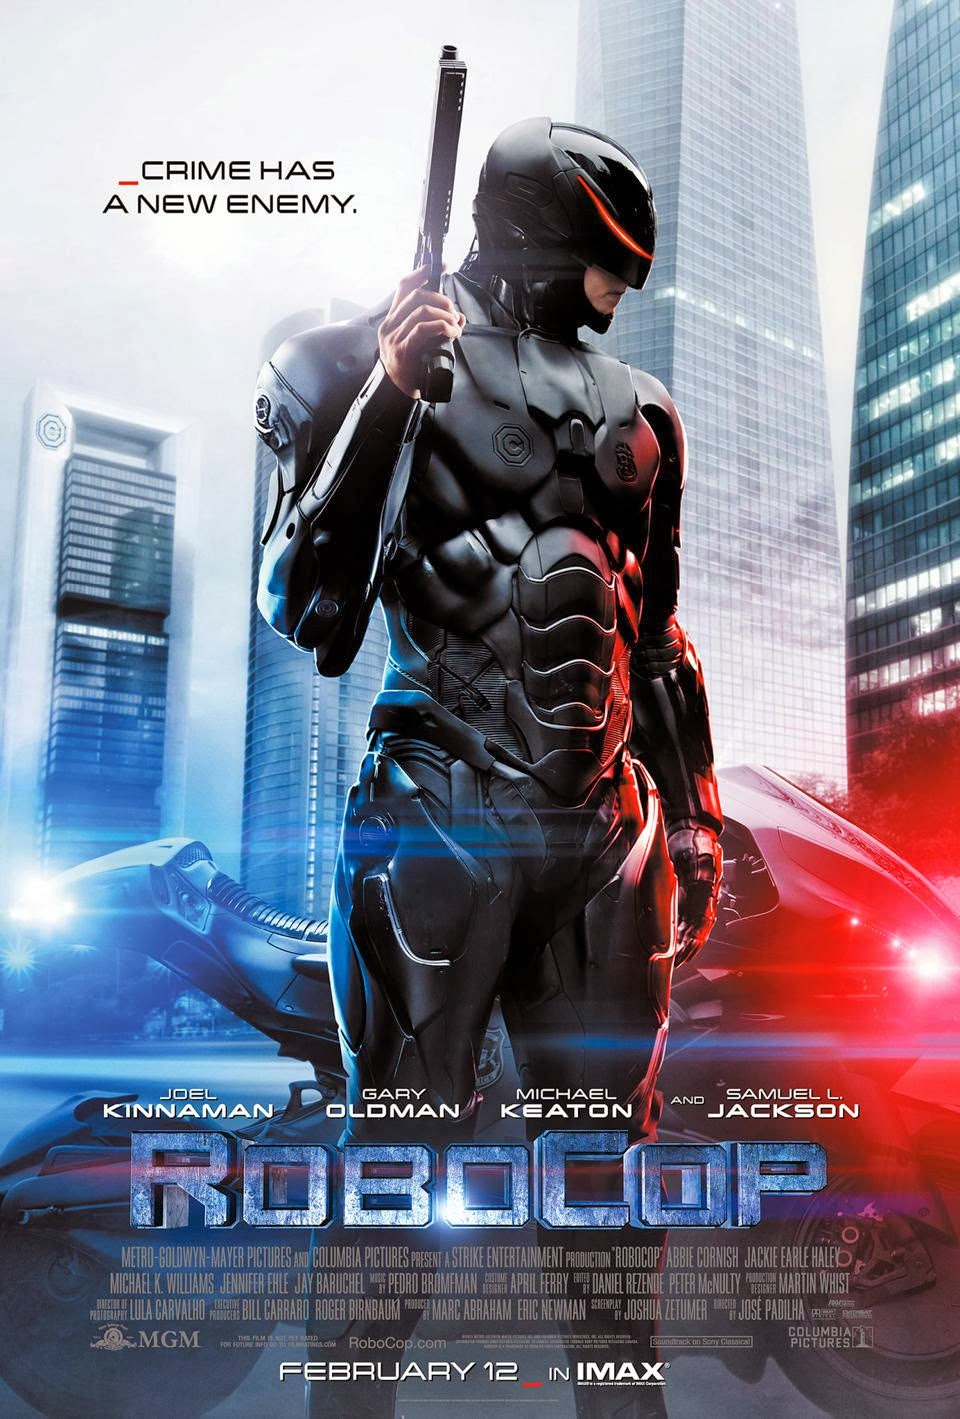 Regarder RoboCop en streaming - Film Streaming